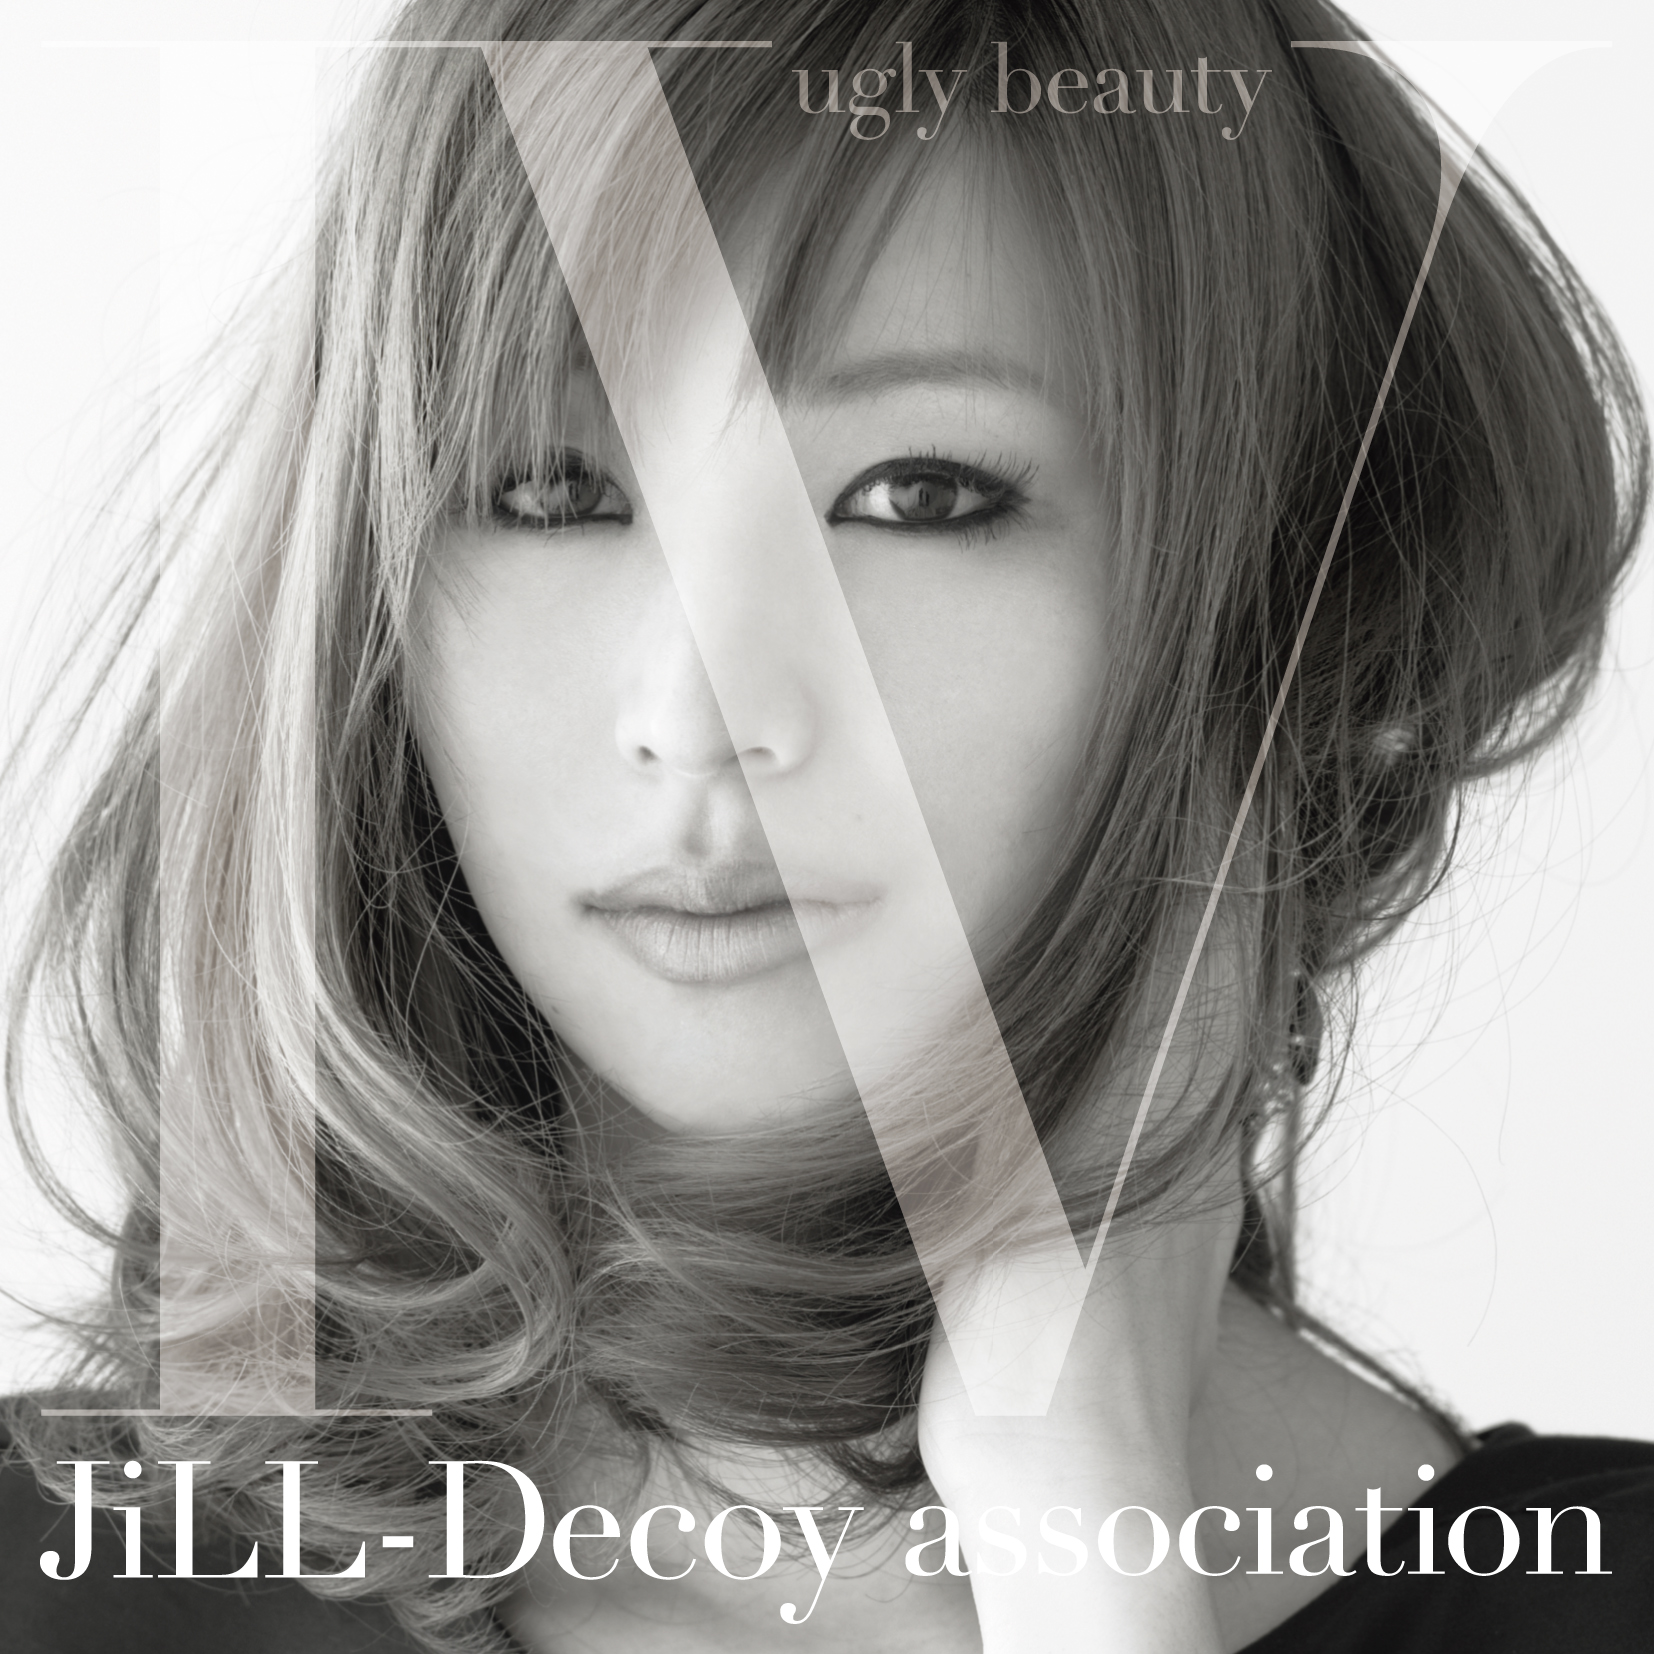 JiLL-Decoy association 「Ⅳ」